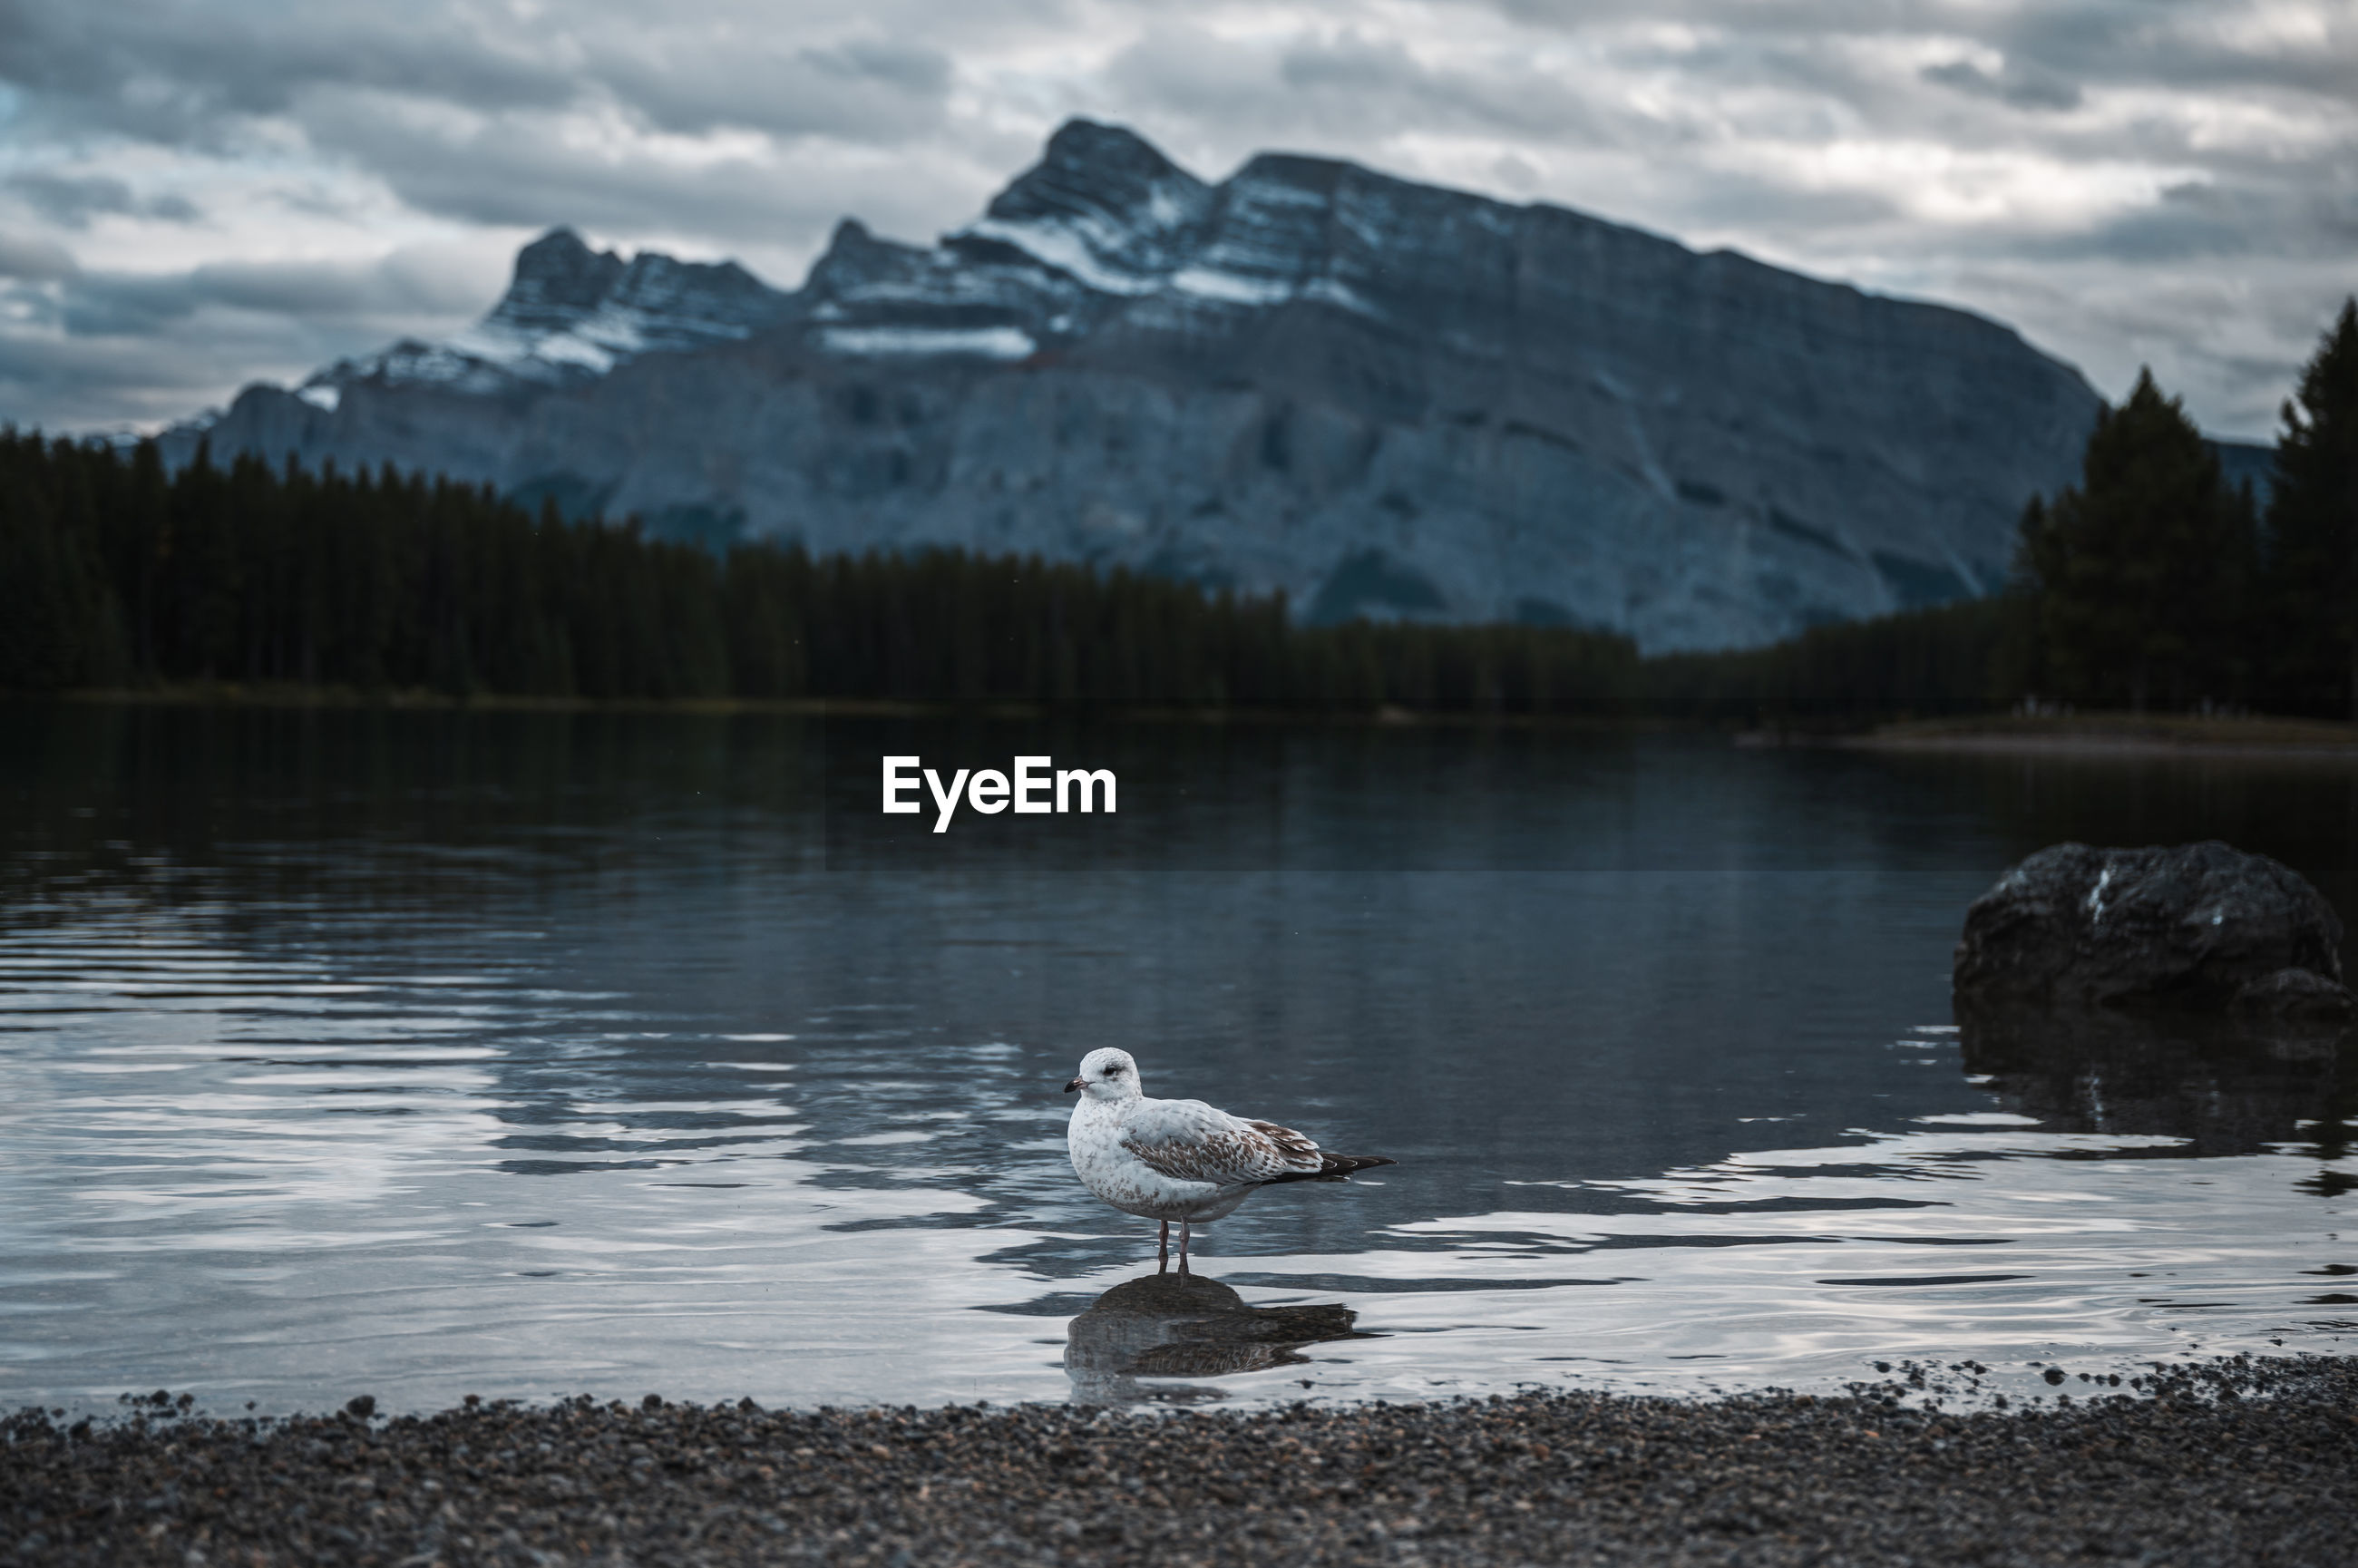 VIEW OF BIRDS ON LAKE AGAINST MOUNTAINS